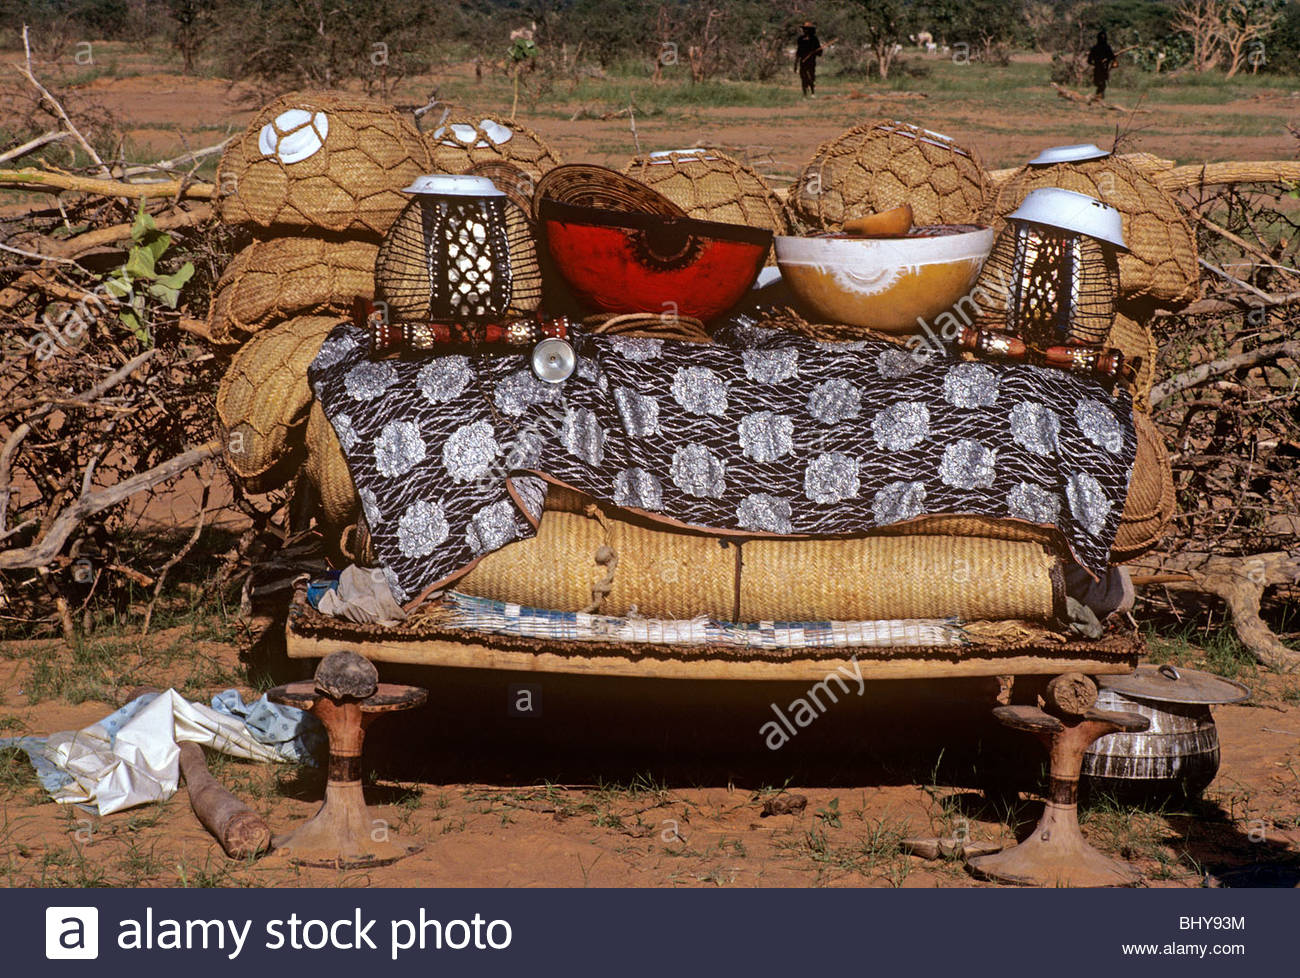 Nomads possessions Niger - Stock Image